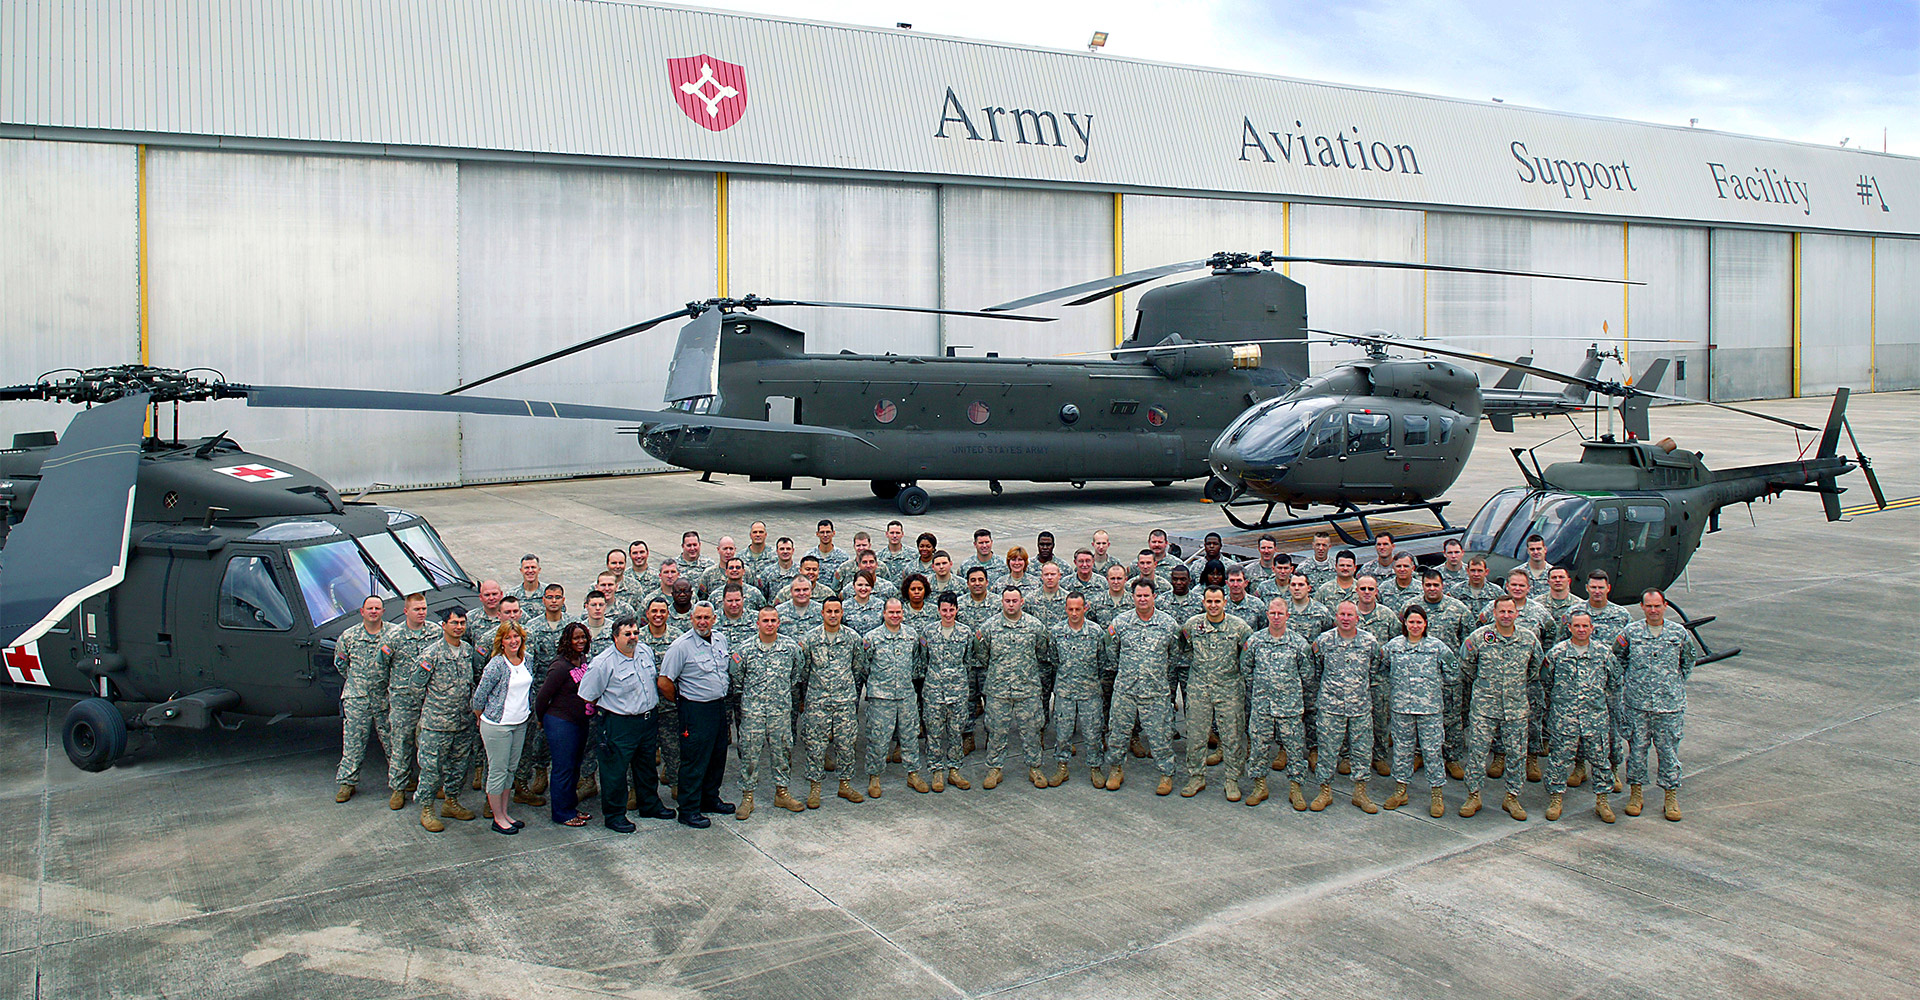 Army Aviation Support Facility.